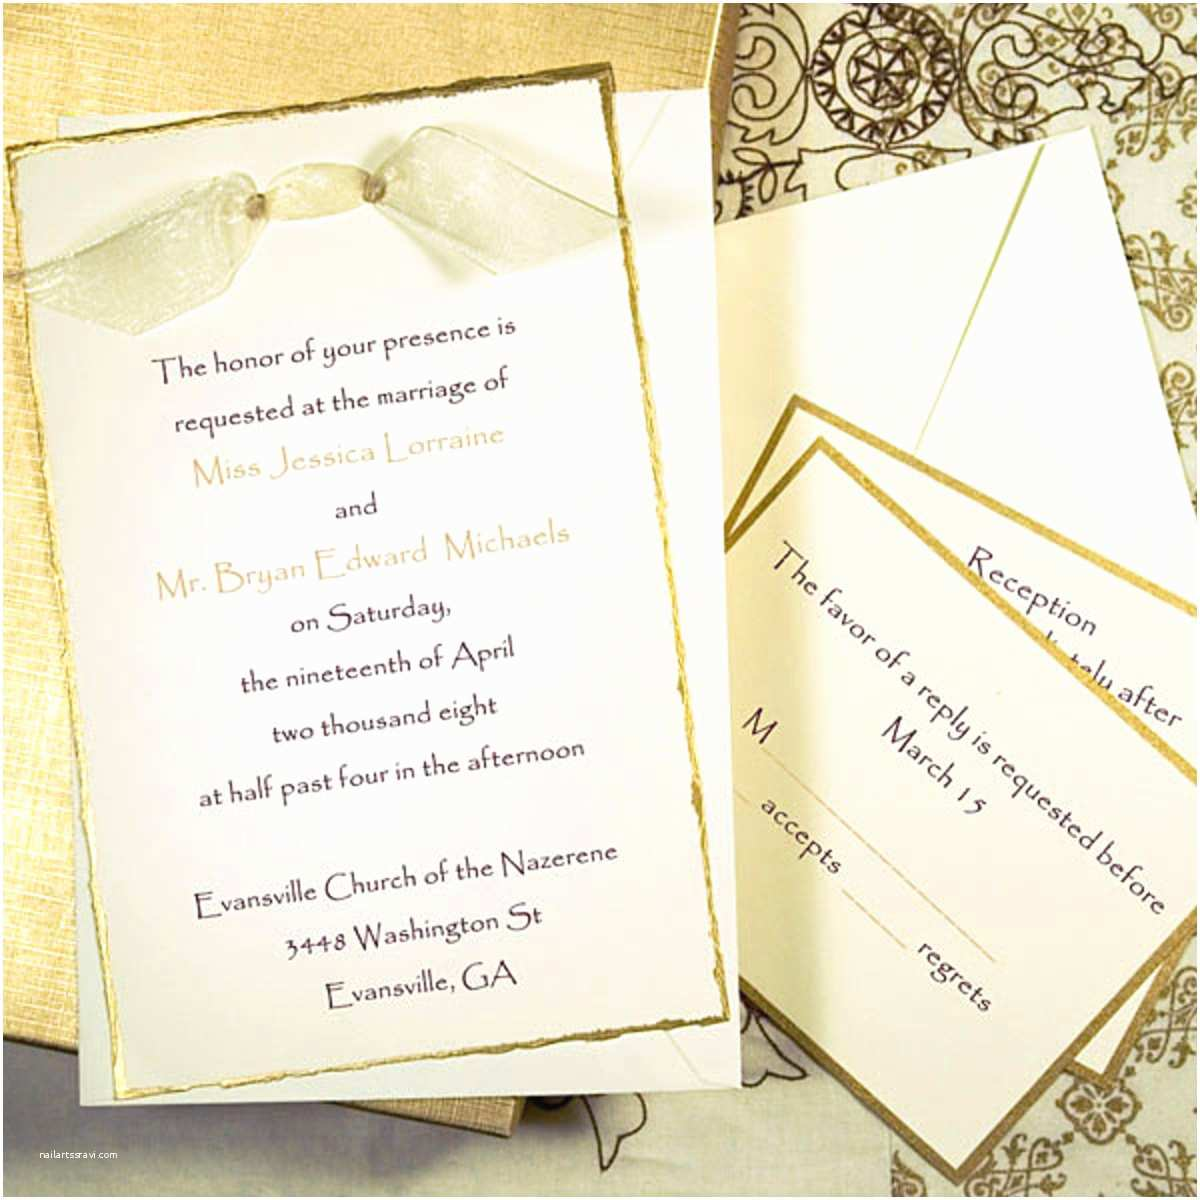 Diy Wedding Invitations Do It Yourself Wedding Invitations the Ultimate Guide